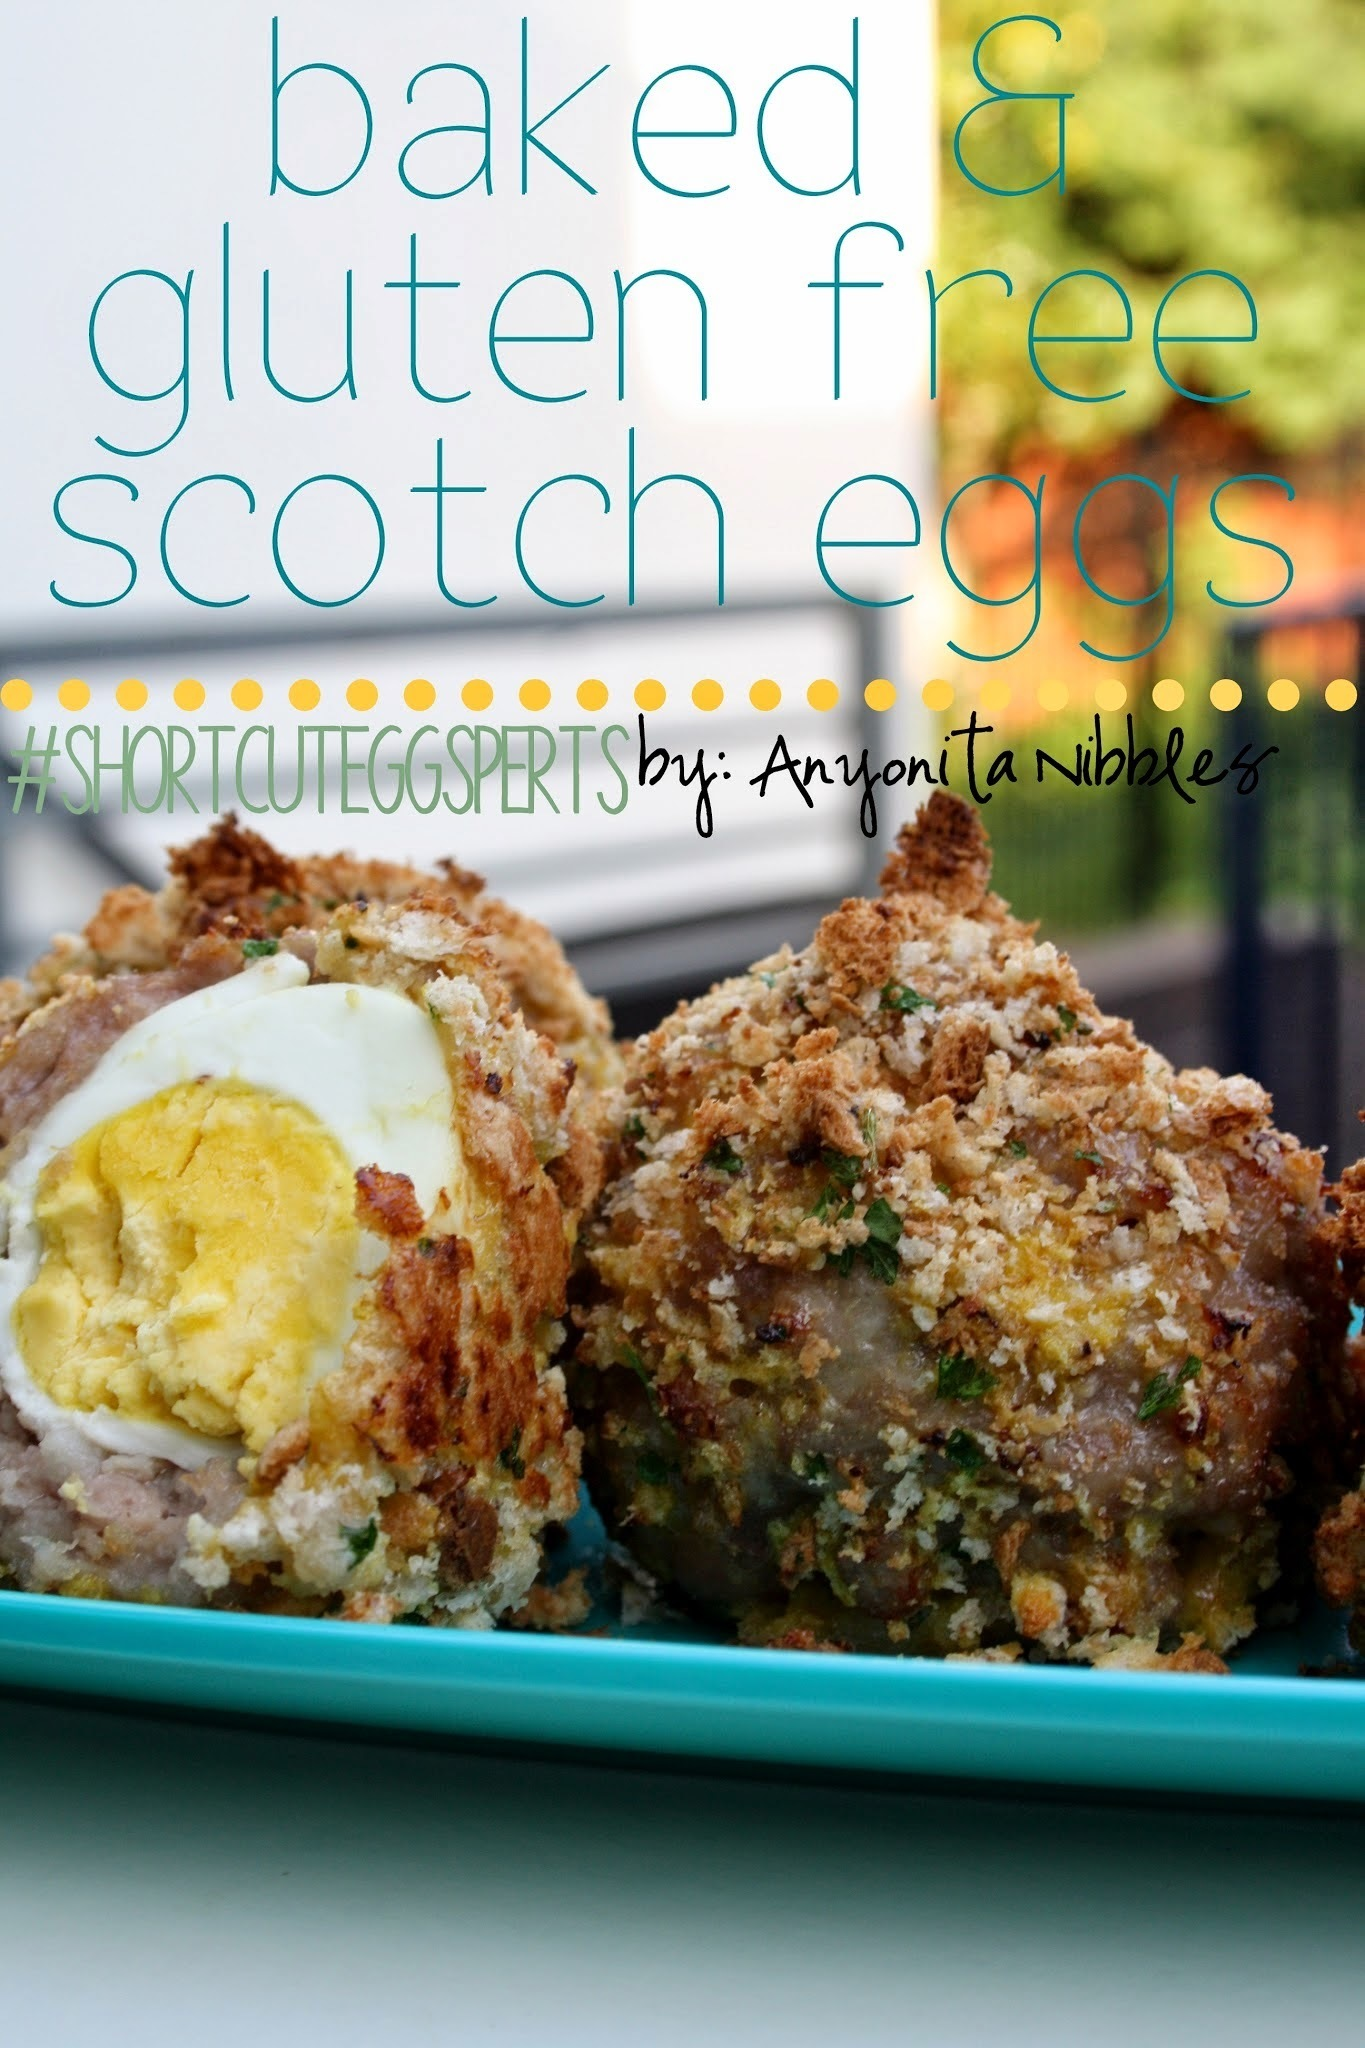 Baked & Gluten Free Scotch Eggs